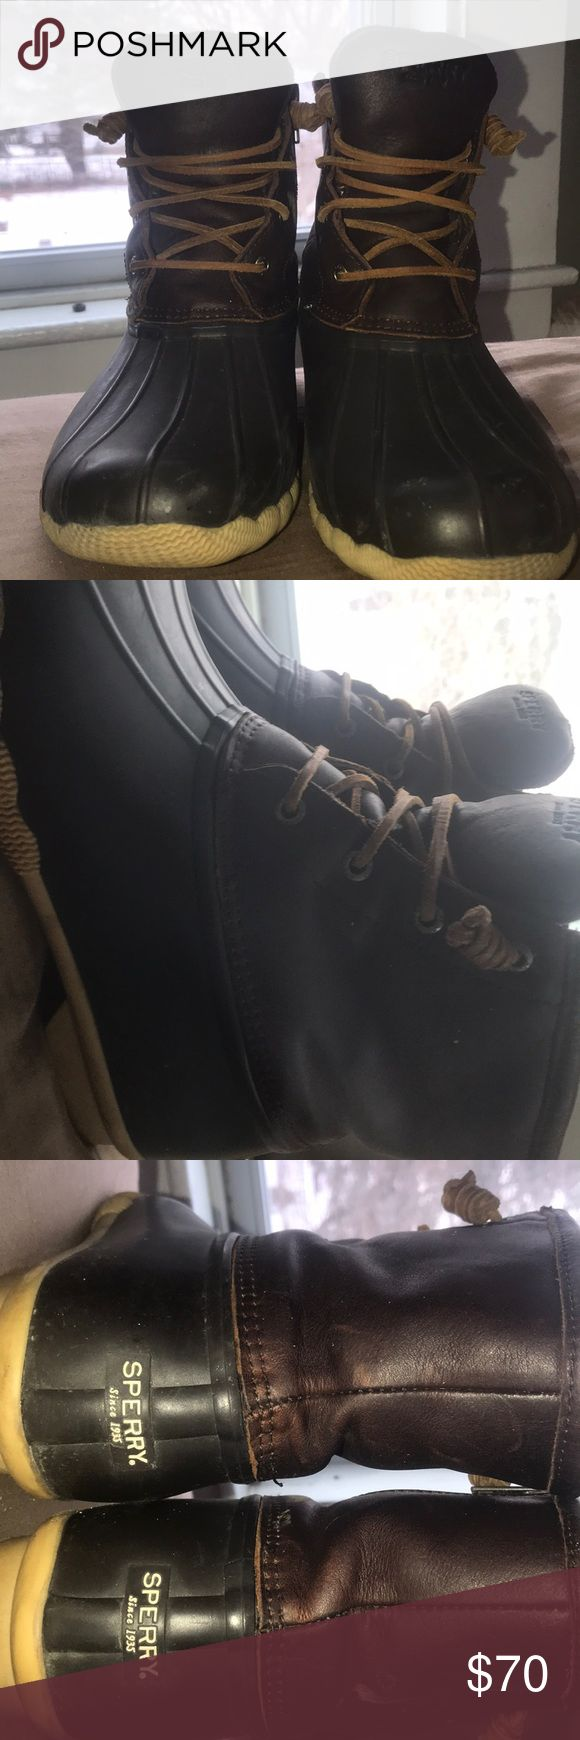 Sperry Duck Boots Women's 8.5, 8/10 condition. Sperry Shoes Winter & Rain Boots